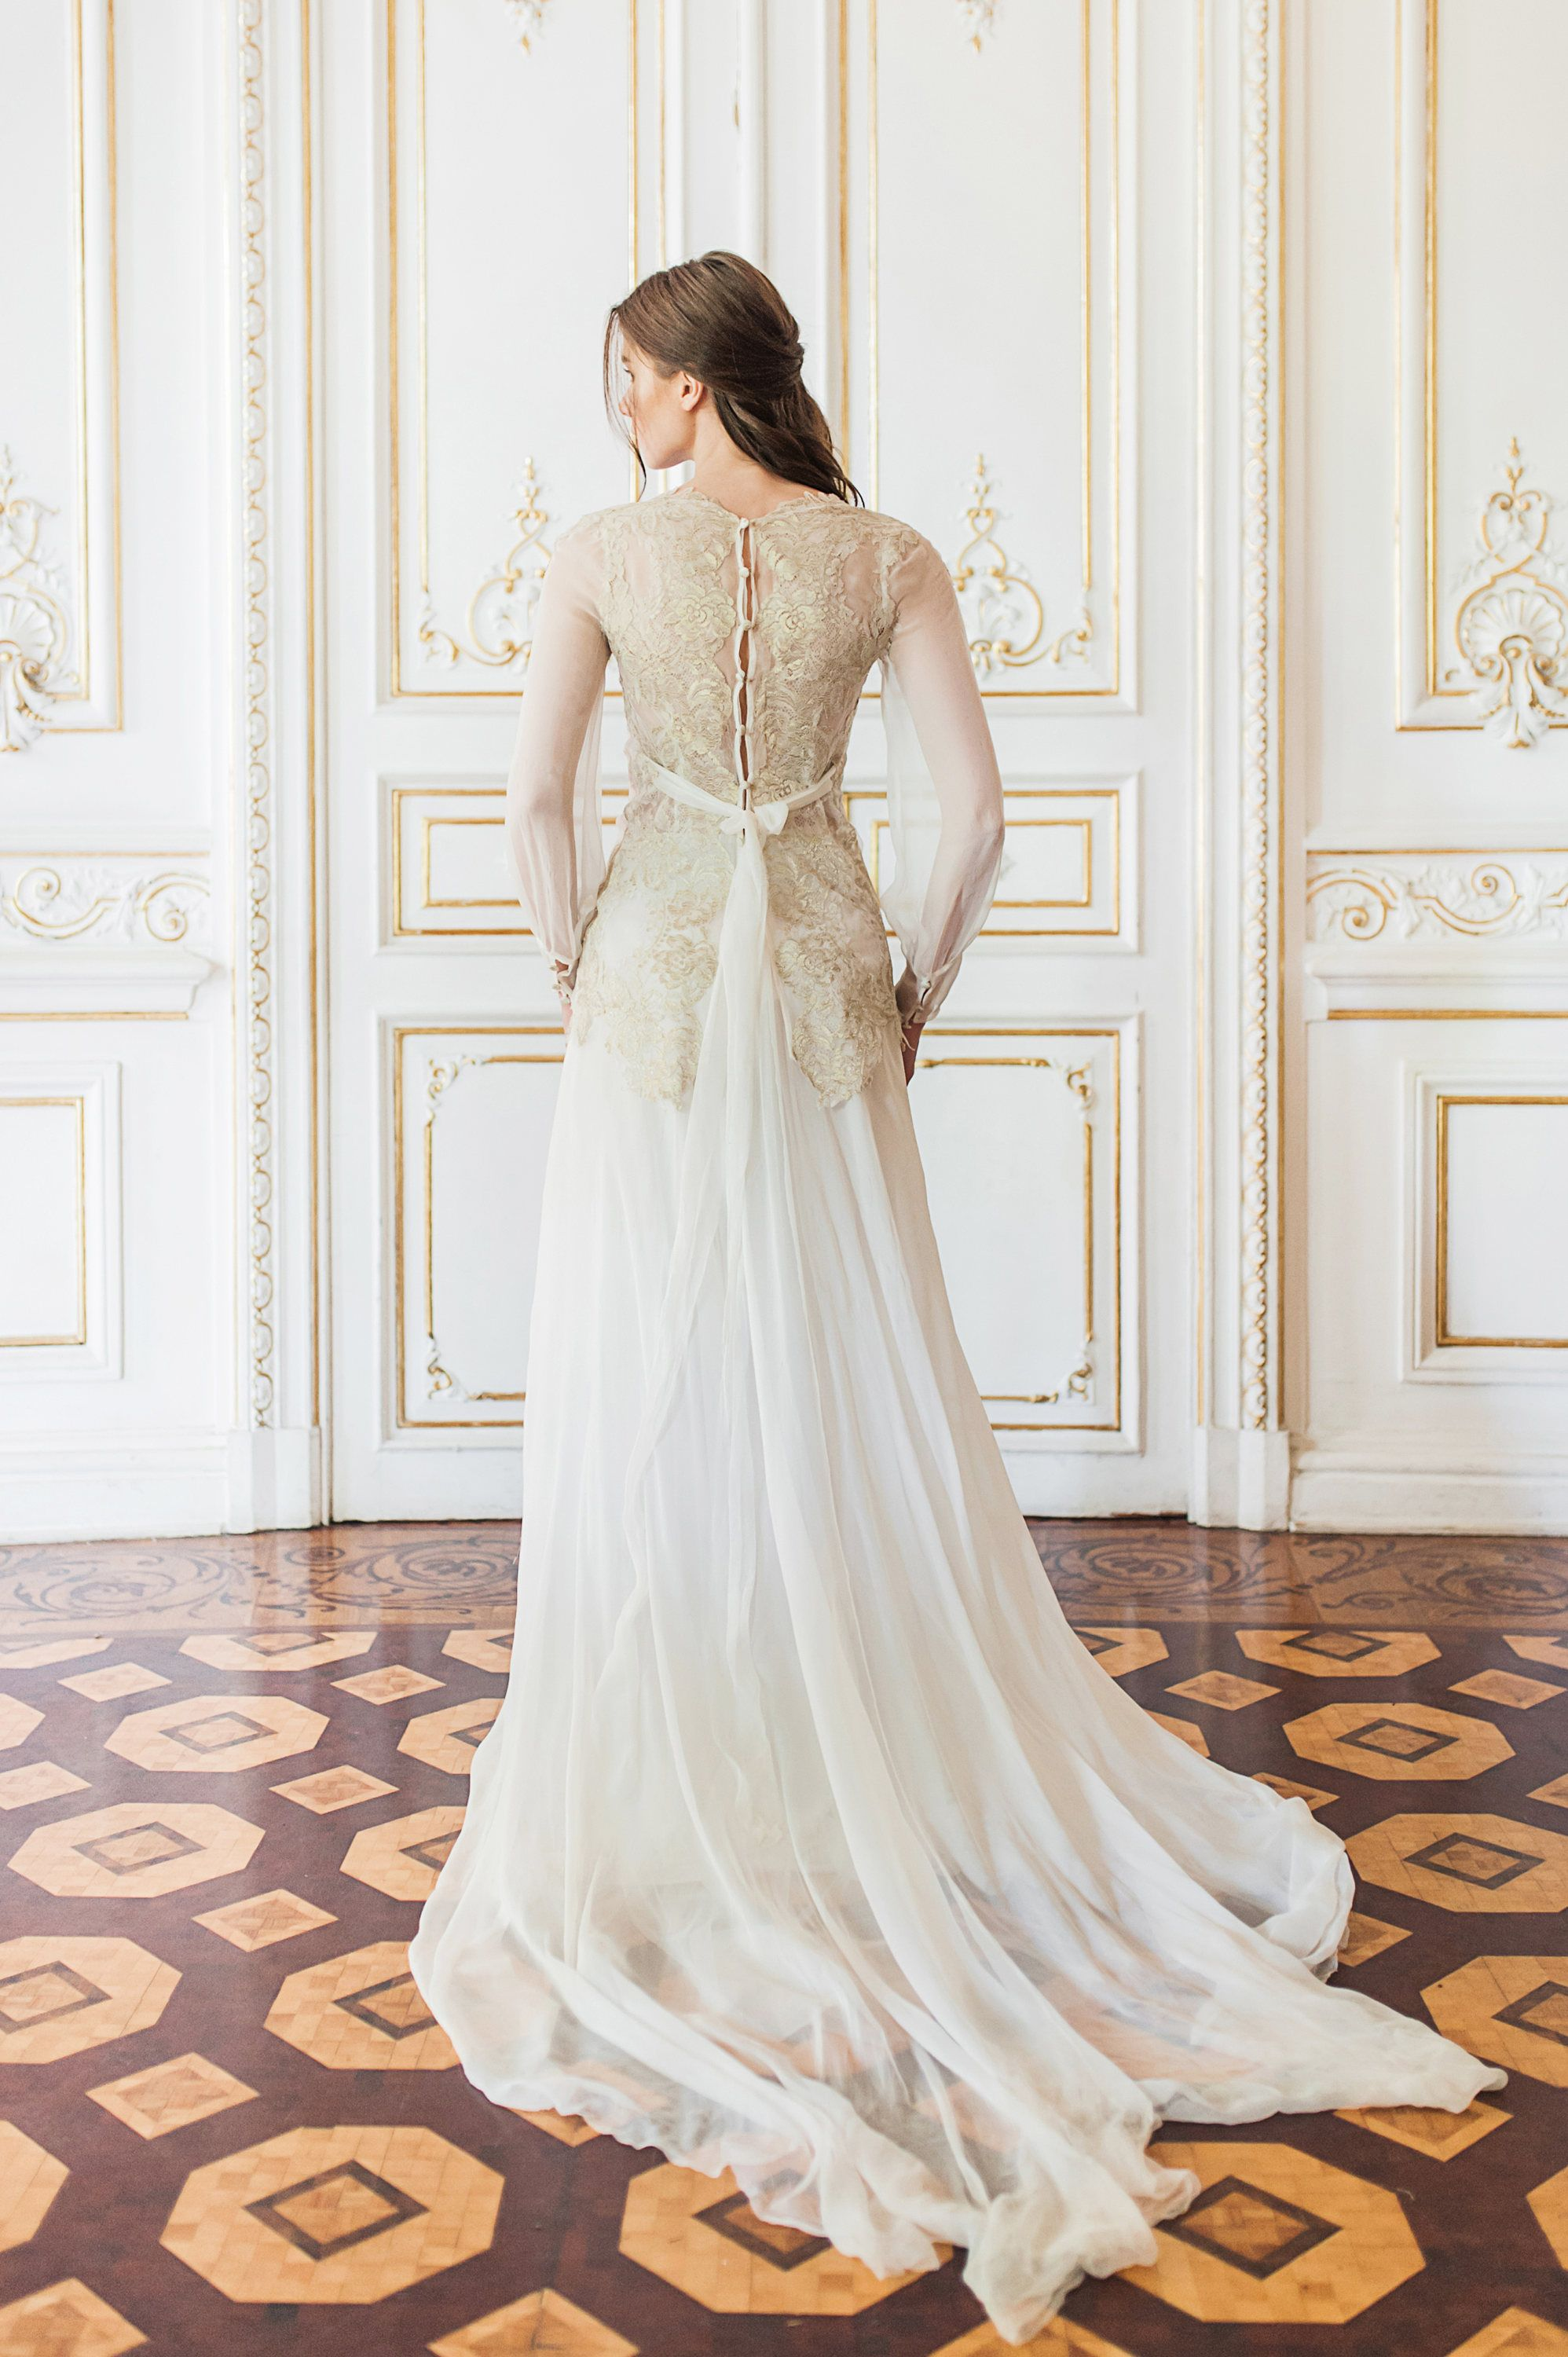 5e17eecbc7e Bishop sleeve wedding gown with gold lace bodice    Coligny wedding dress  by CathyTelle on Etsy